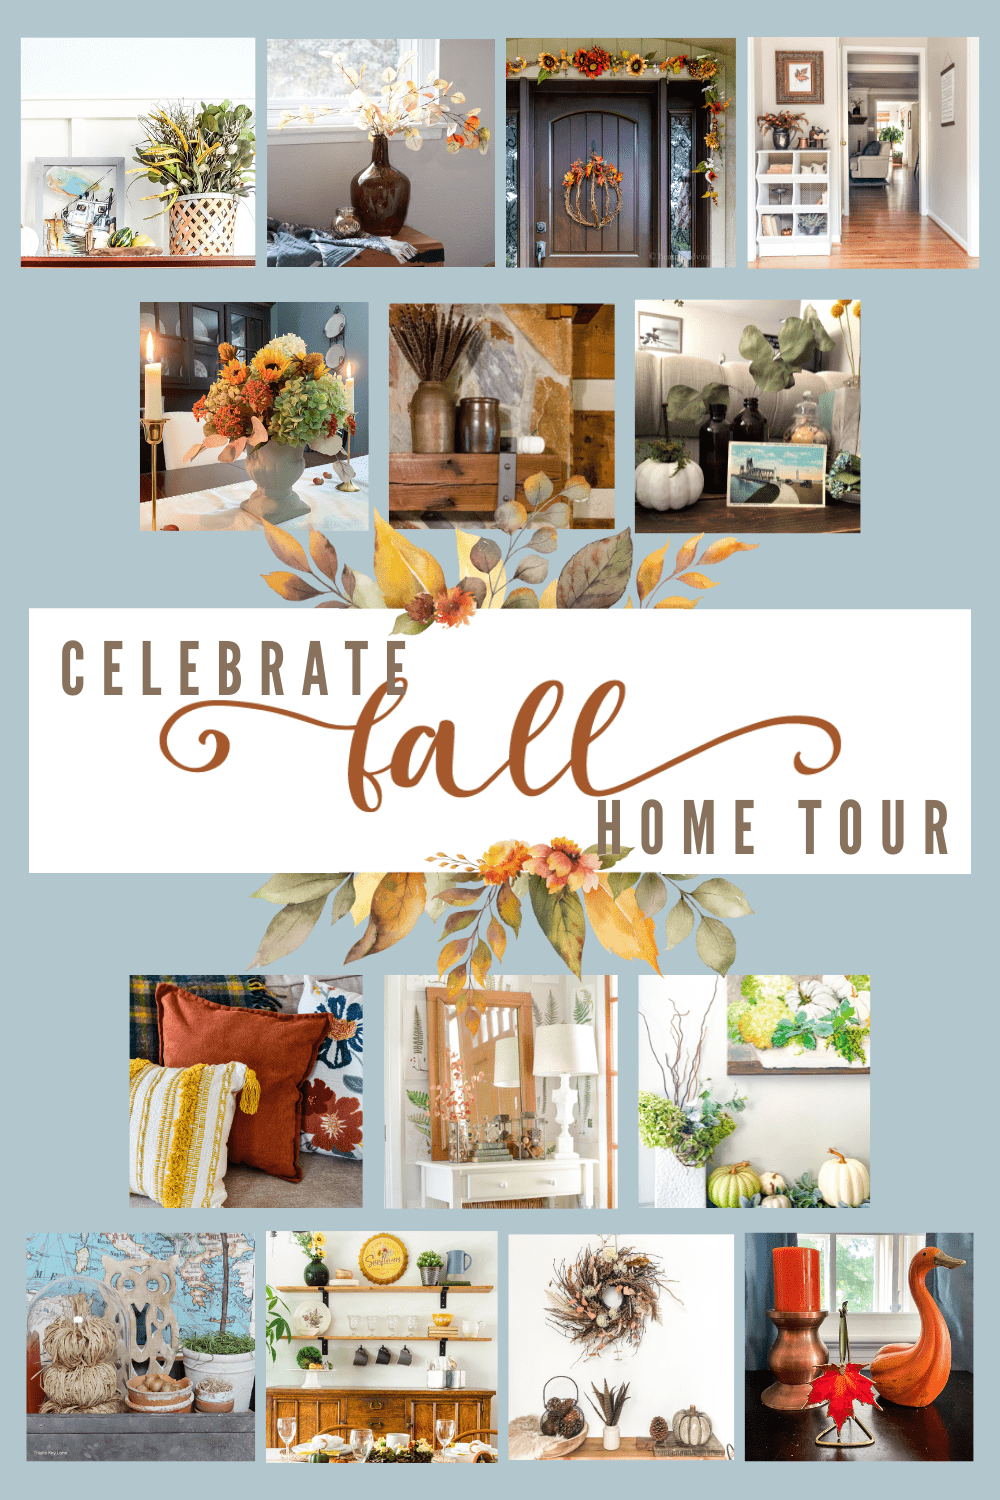 https://myfamilythyme.com/wp-content/uploads/2021/08/celebrate-fall-tour.png